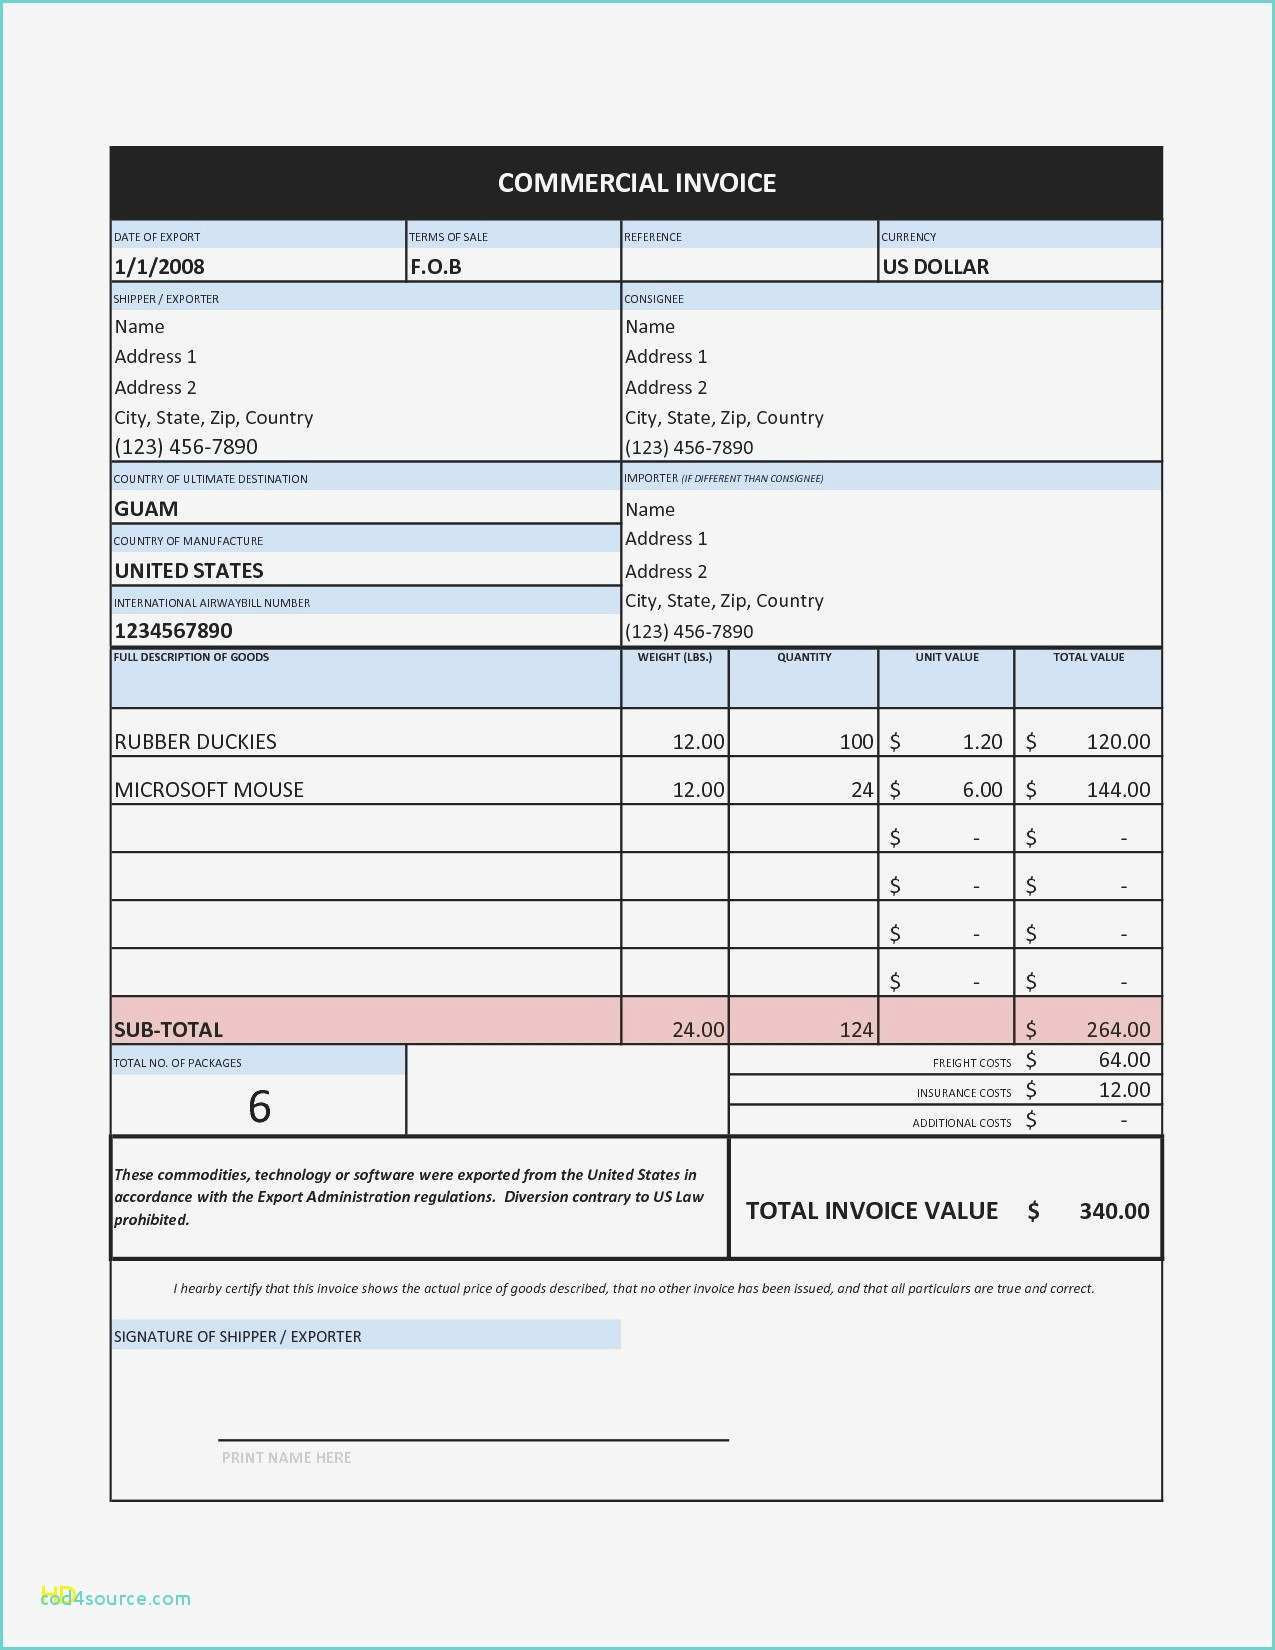 Free Invoice Templates Printable Of Free Printable Checks Template - Free Printable Checks Template